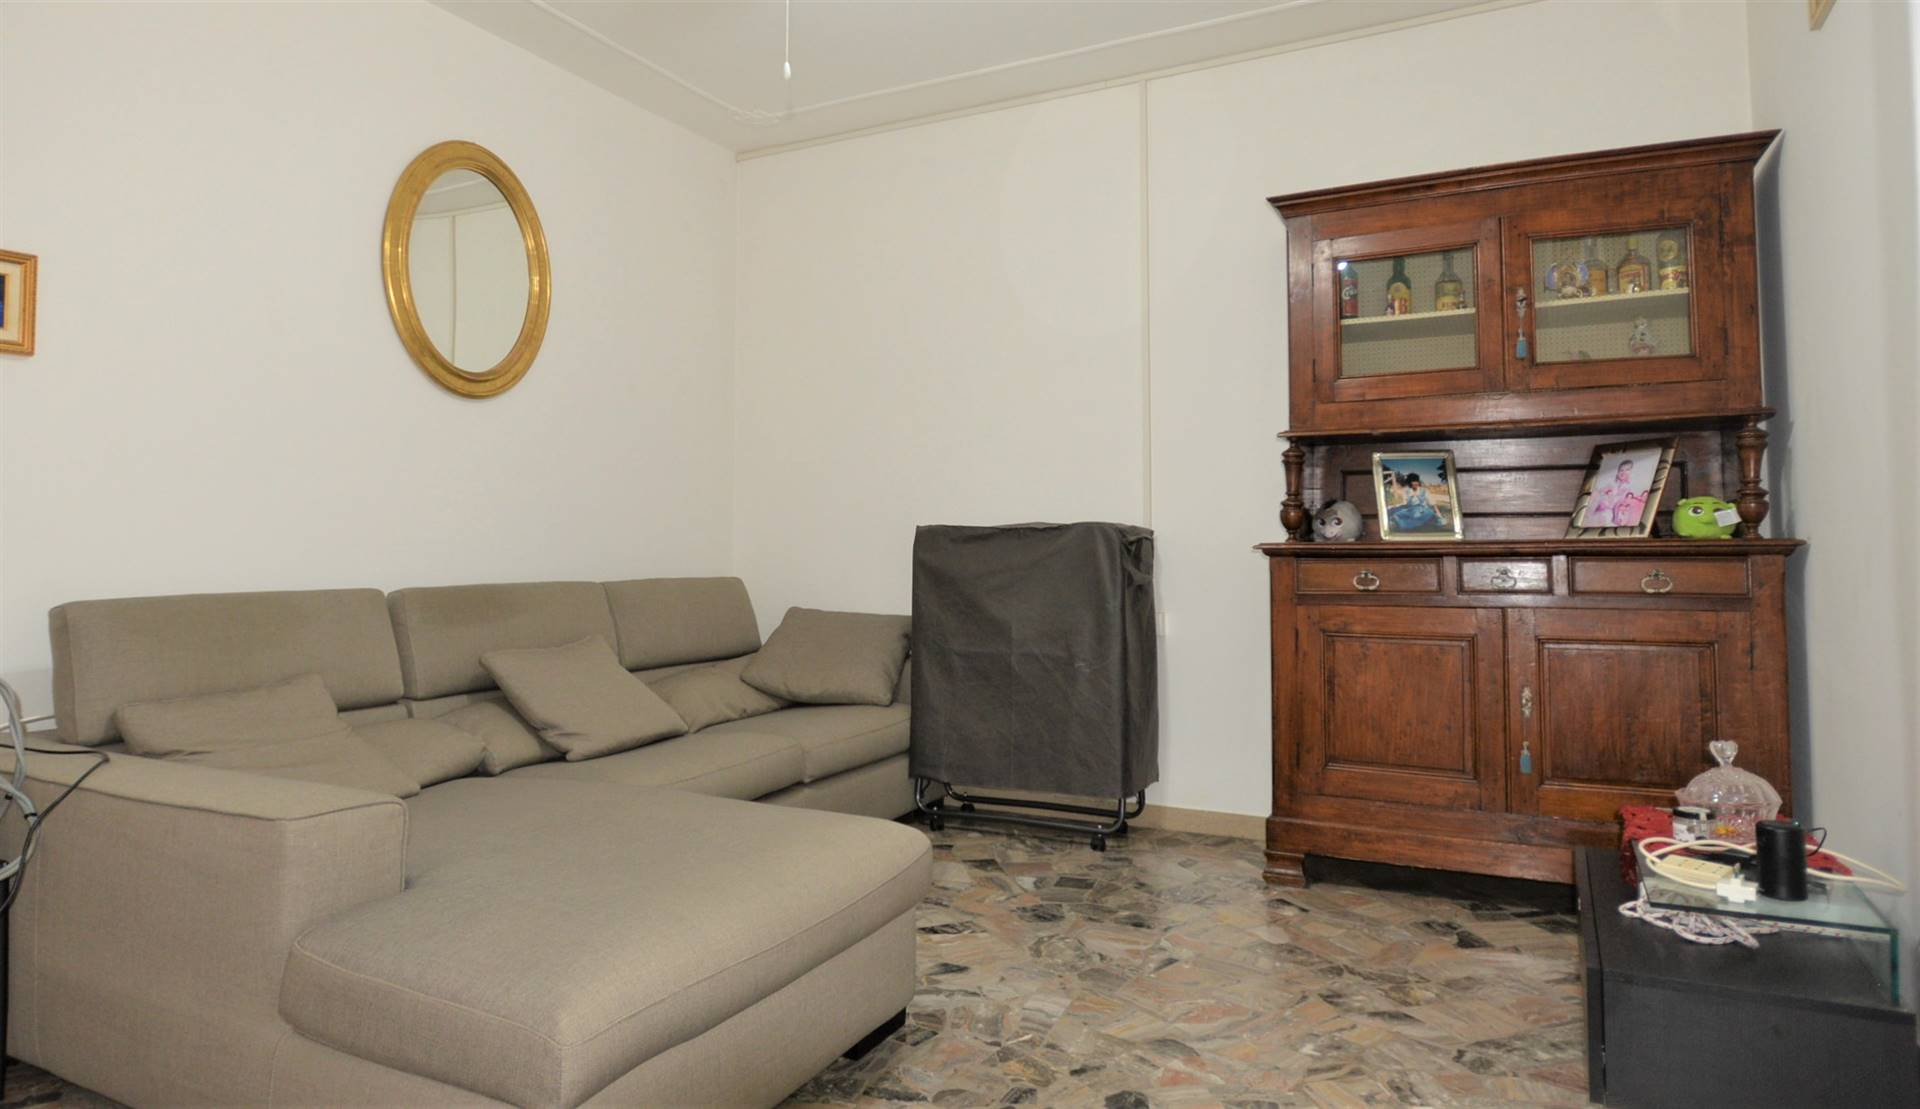 ORGNANO, SPINEA, Apartment for sale of 90 Sq. mt., Habitable, Heating Individual heating system, Energetic class: G, placed at 2° on 2, composed by: